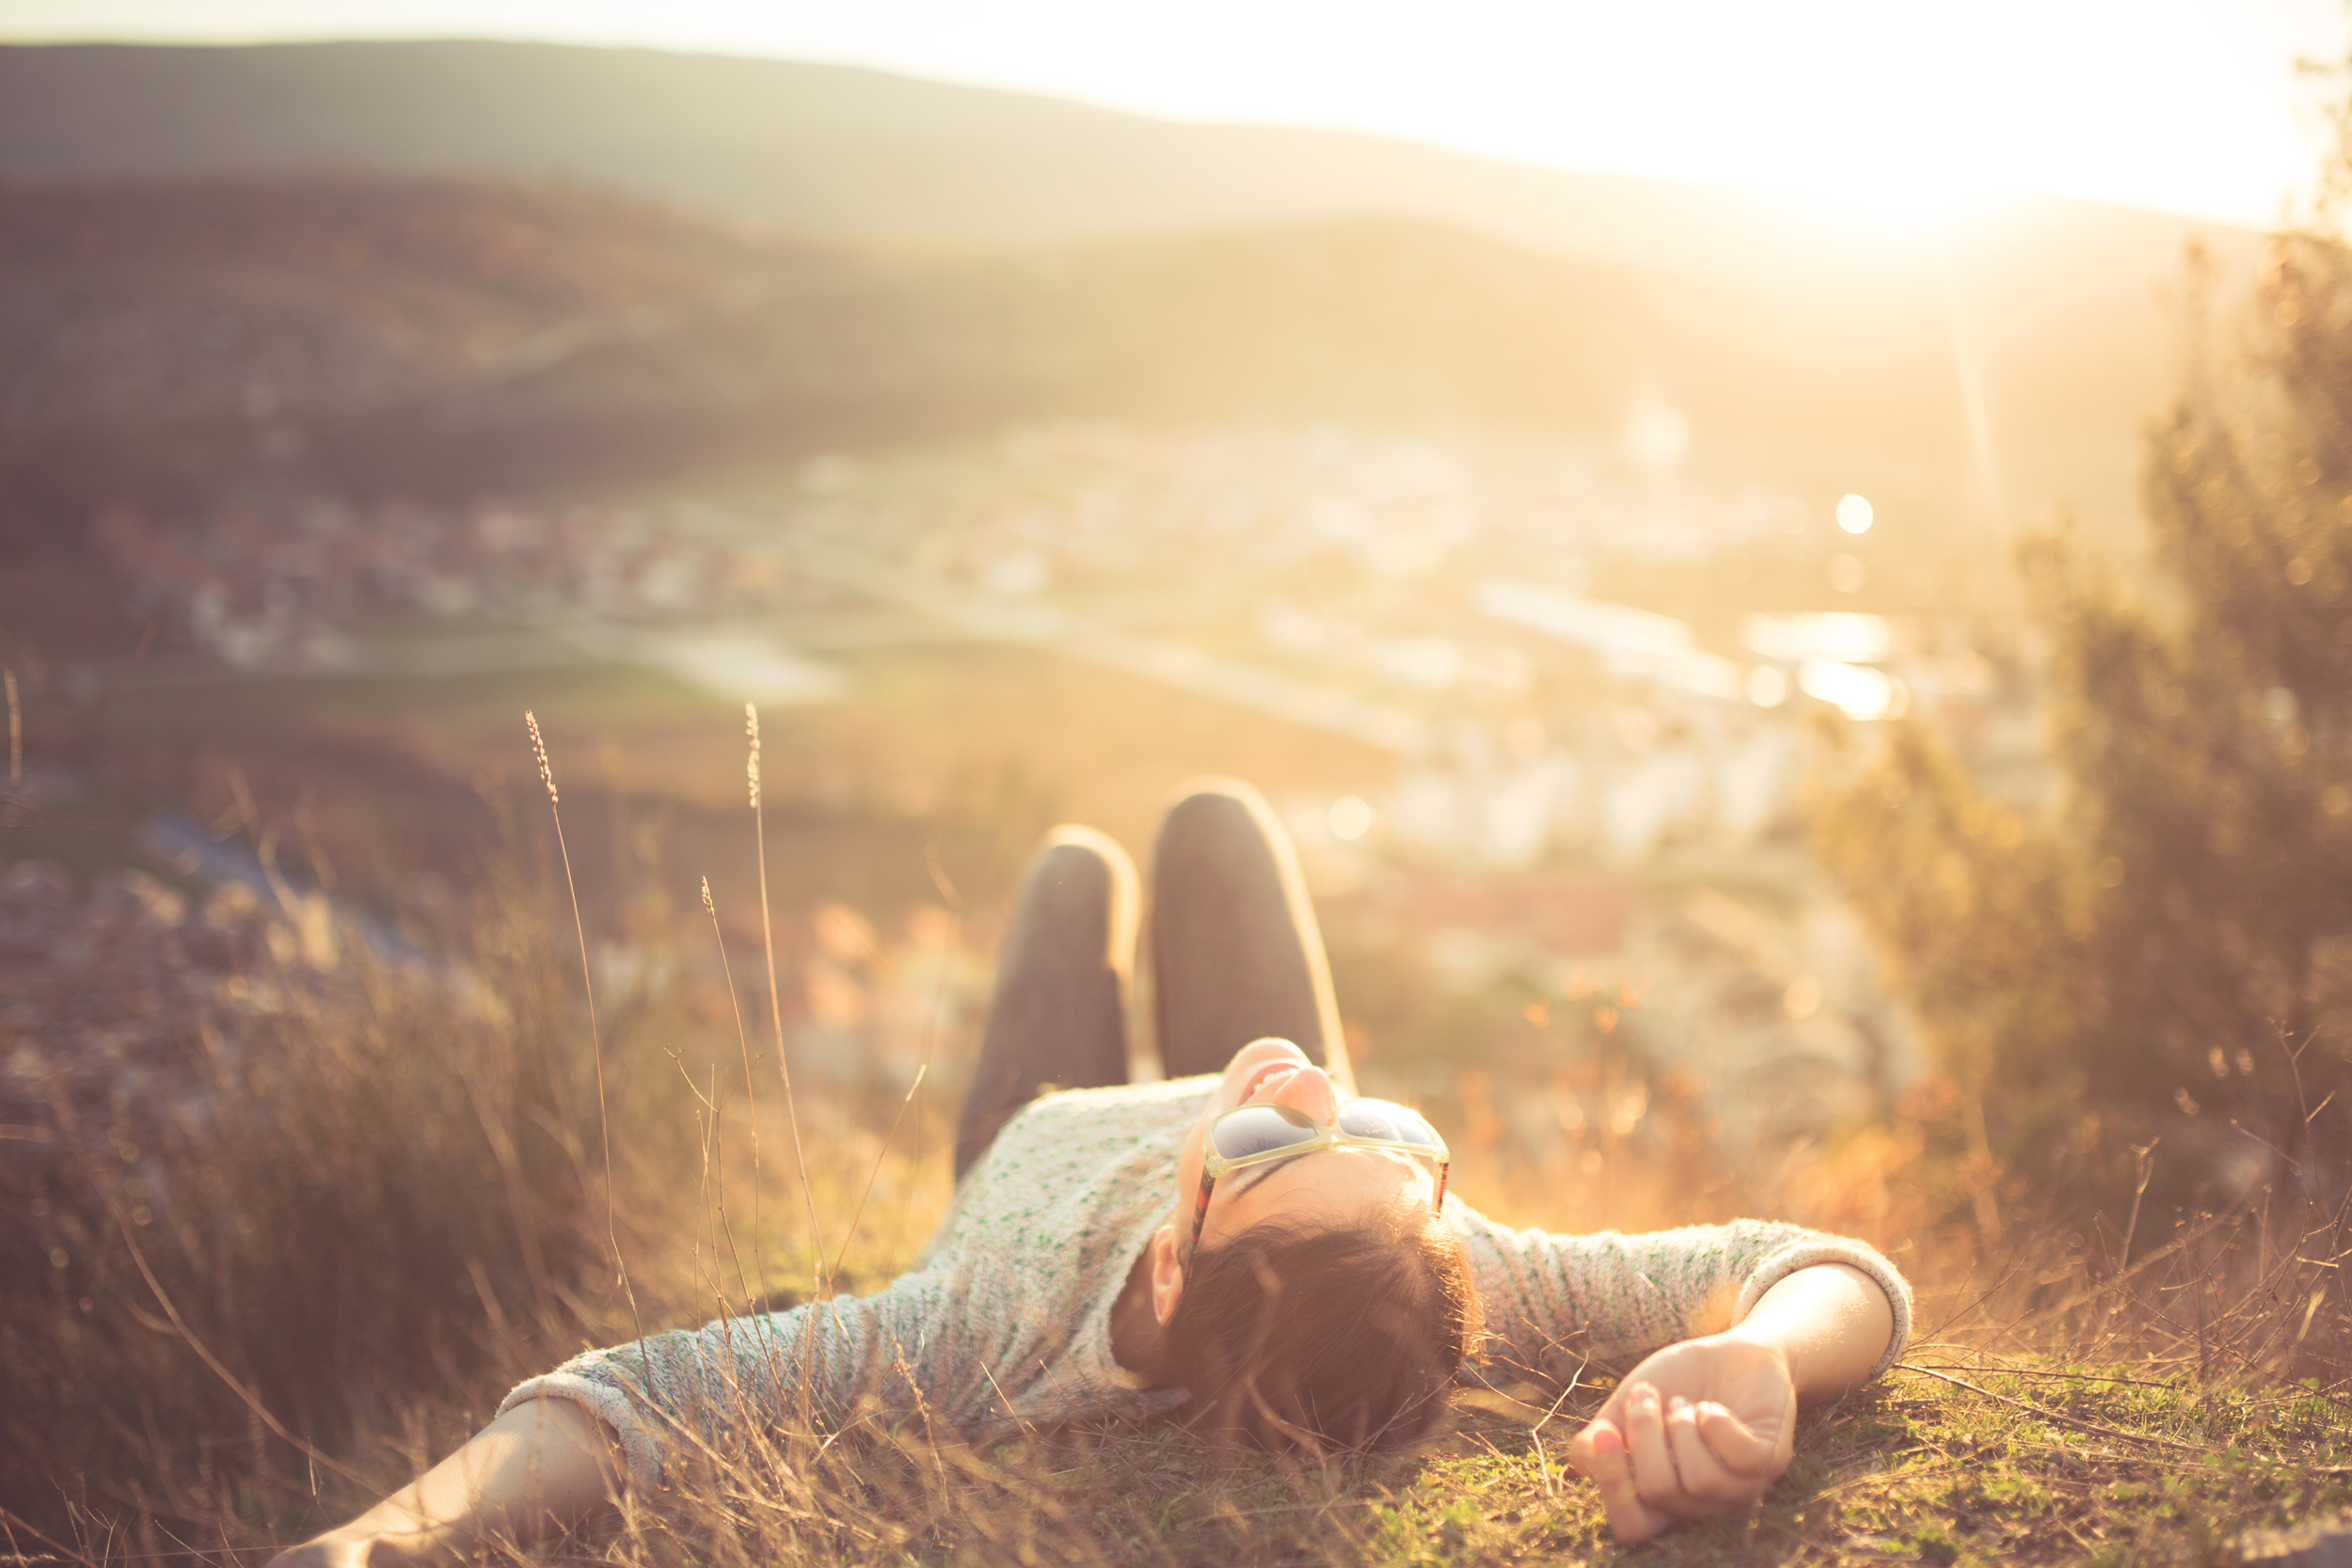 stock-photo-carefree-happy-woman-lying-on-green-grass-meadow-on-top-of-mountain-edge-cliff-enjoying-sun-on-her-378999655.jpg